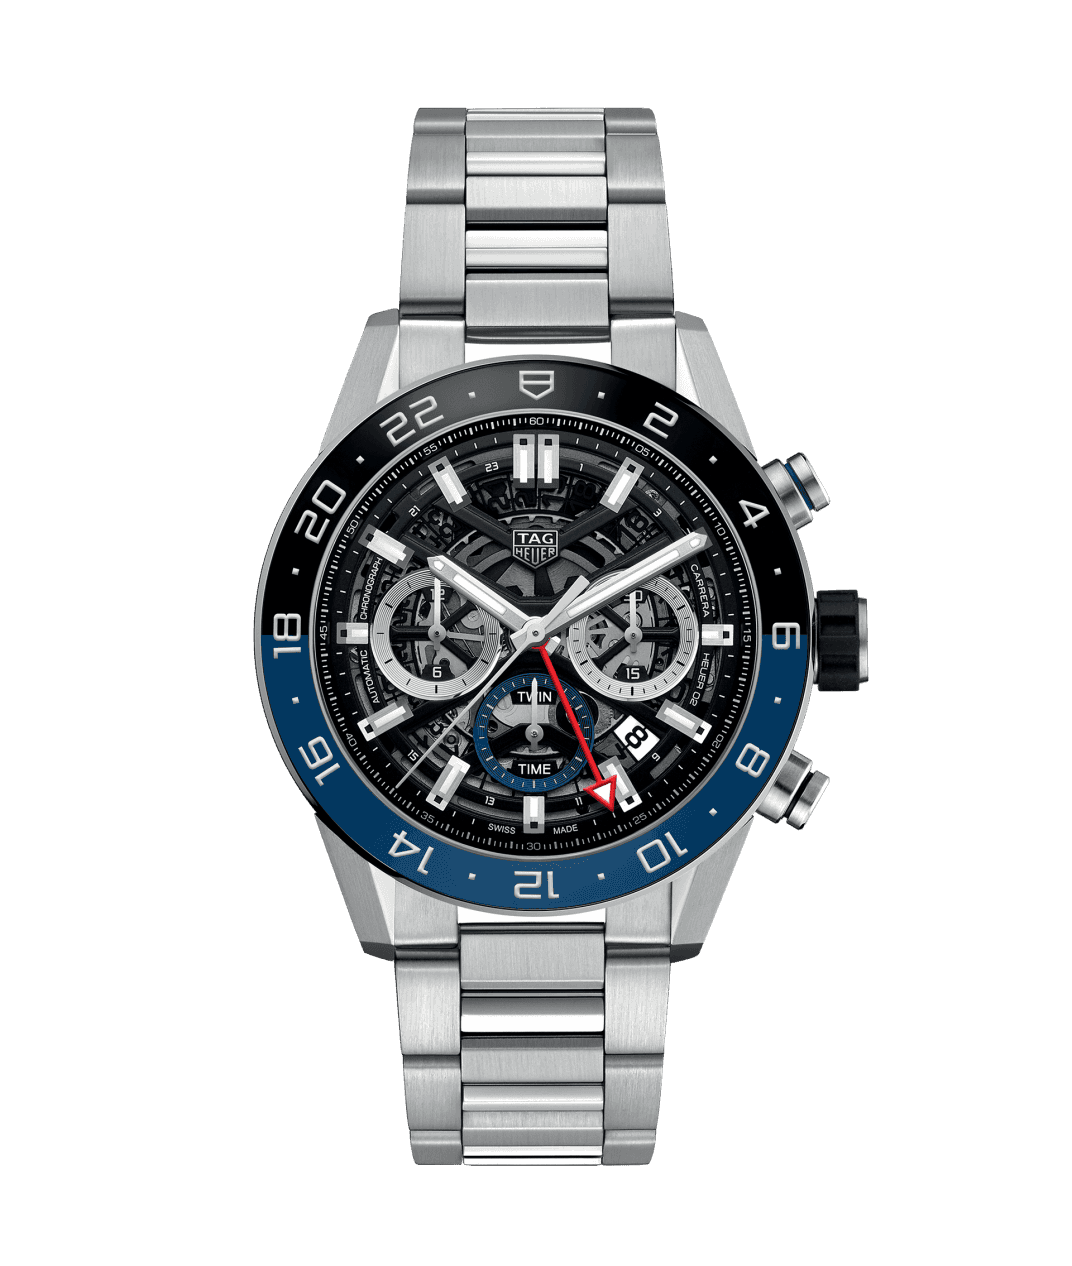 Tag Heuer Carrera Calibre Black and Blue Watch - 45mm front view